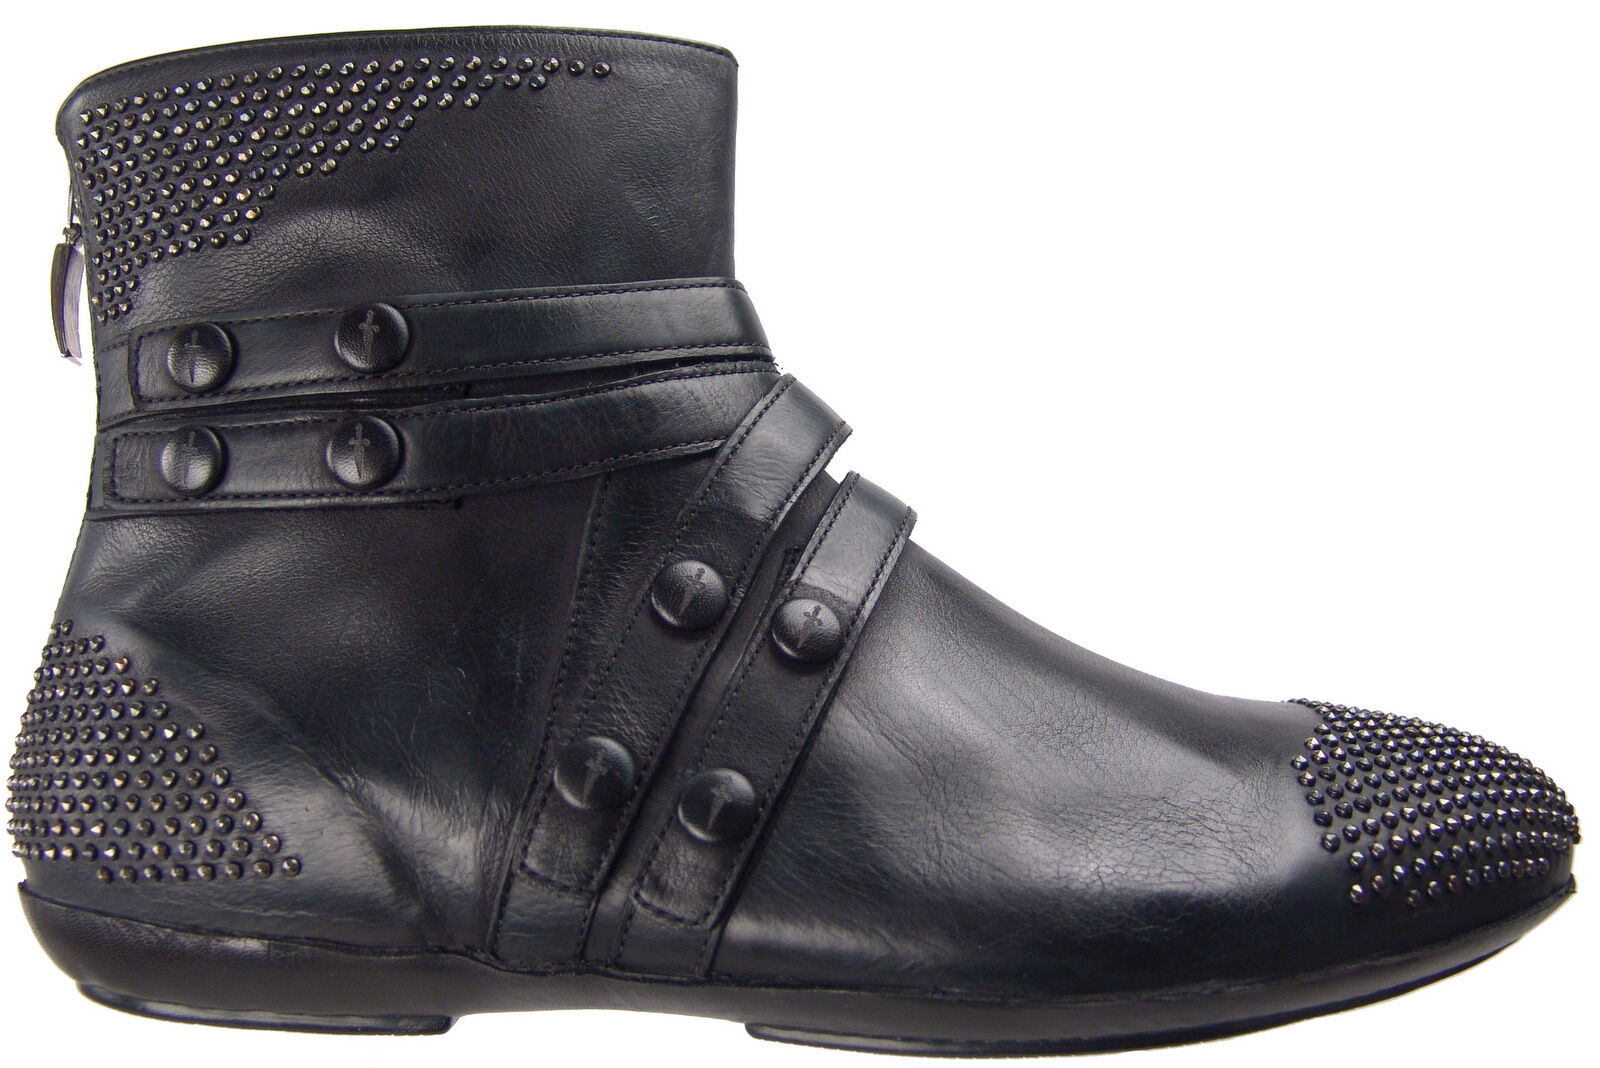 CESARE PACIOTTI   6 SUPER STYLISH ANKLE BOOTS STUDDED LAMB LEATHER Uomo SHOES